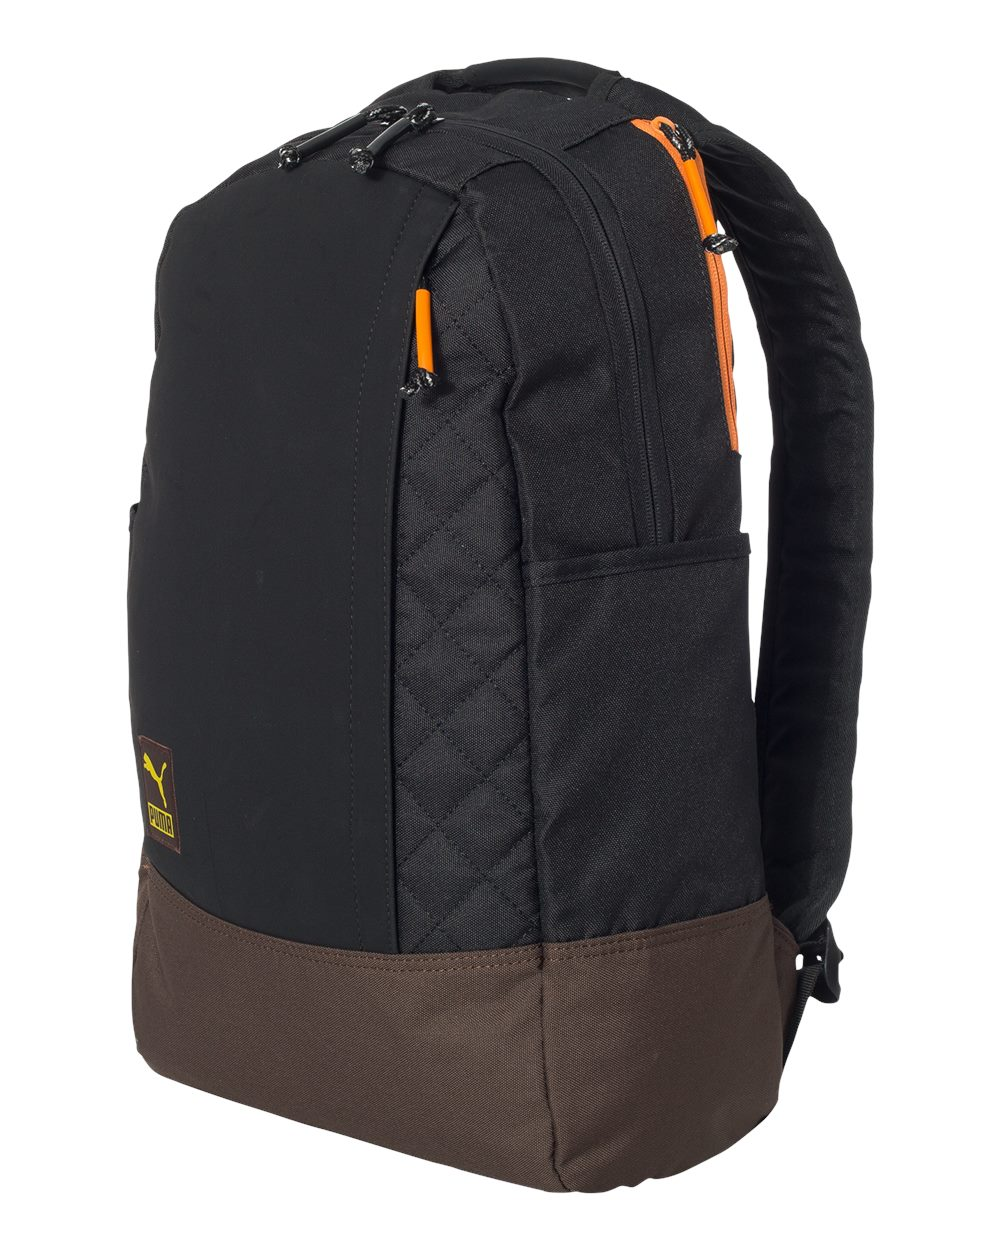 PUMA PMAM1256 - 21.8L Switchstance Backpack